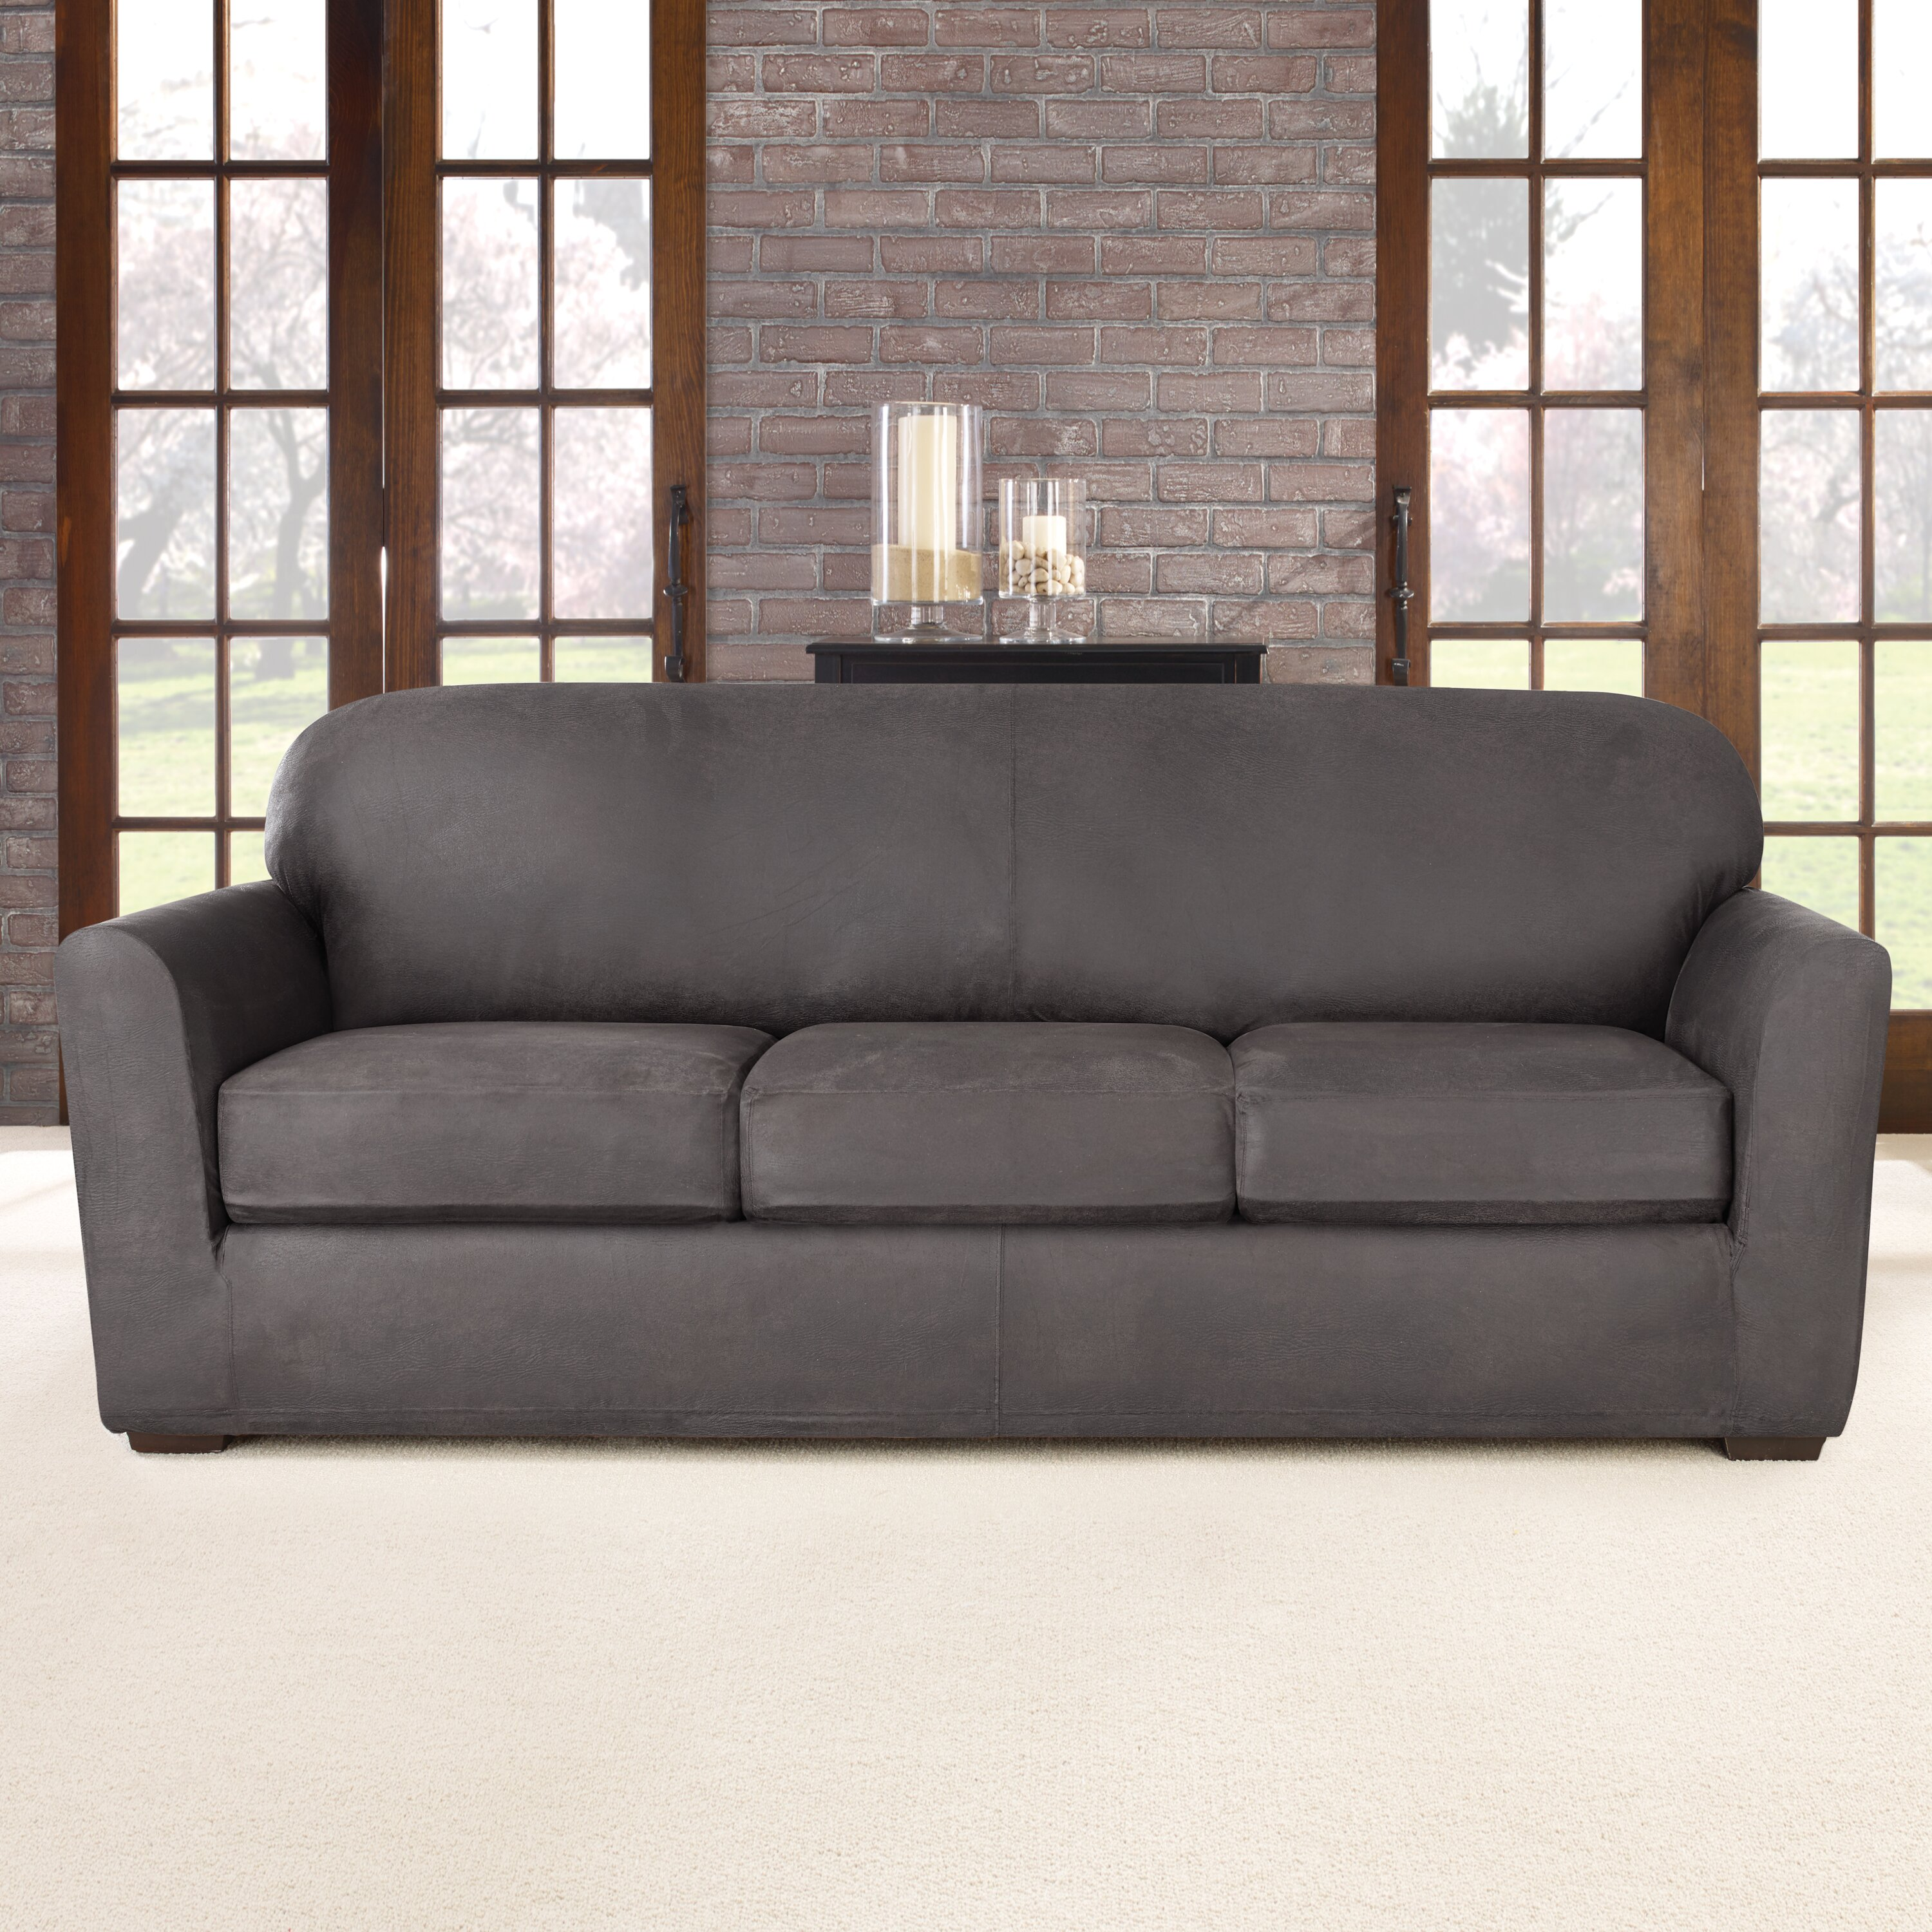 3 Seat Sofa Cover Velcromag